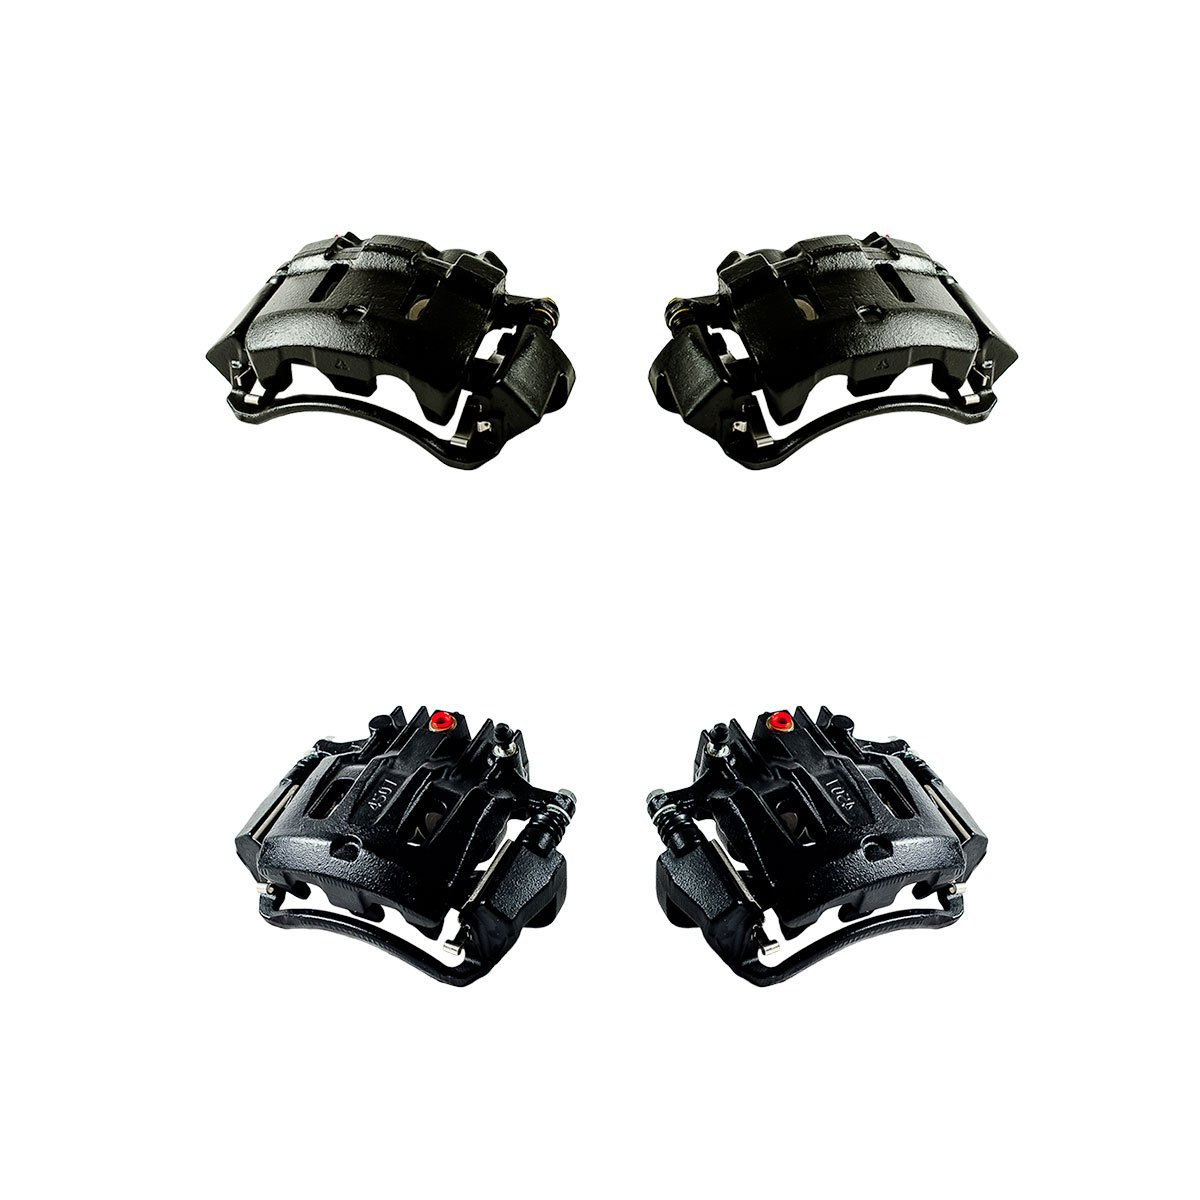 CCK12397 FRONT Performance Grade Semi-Loaded Powder Coated Black Remanufactured Caliper Assembly Set Kit REAR 4